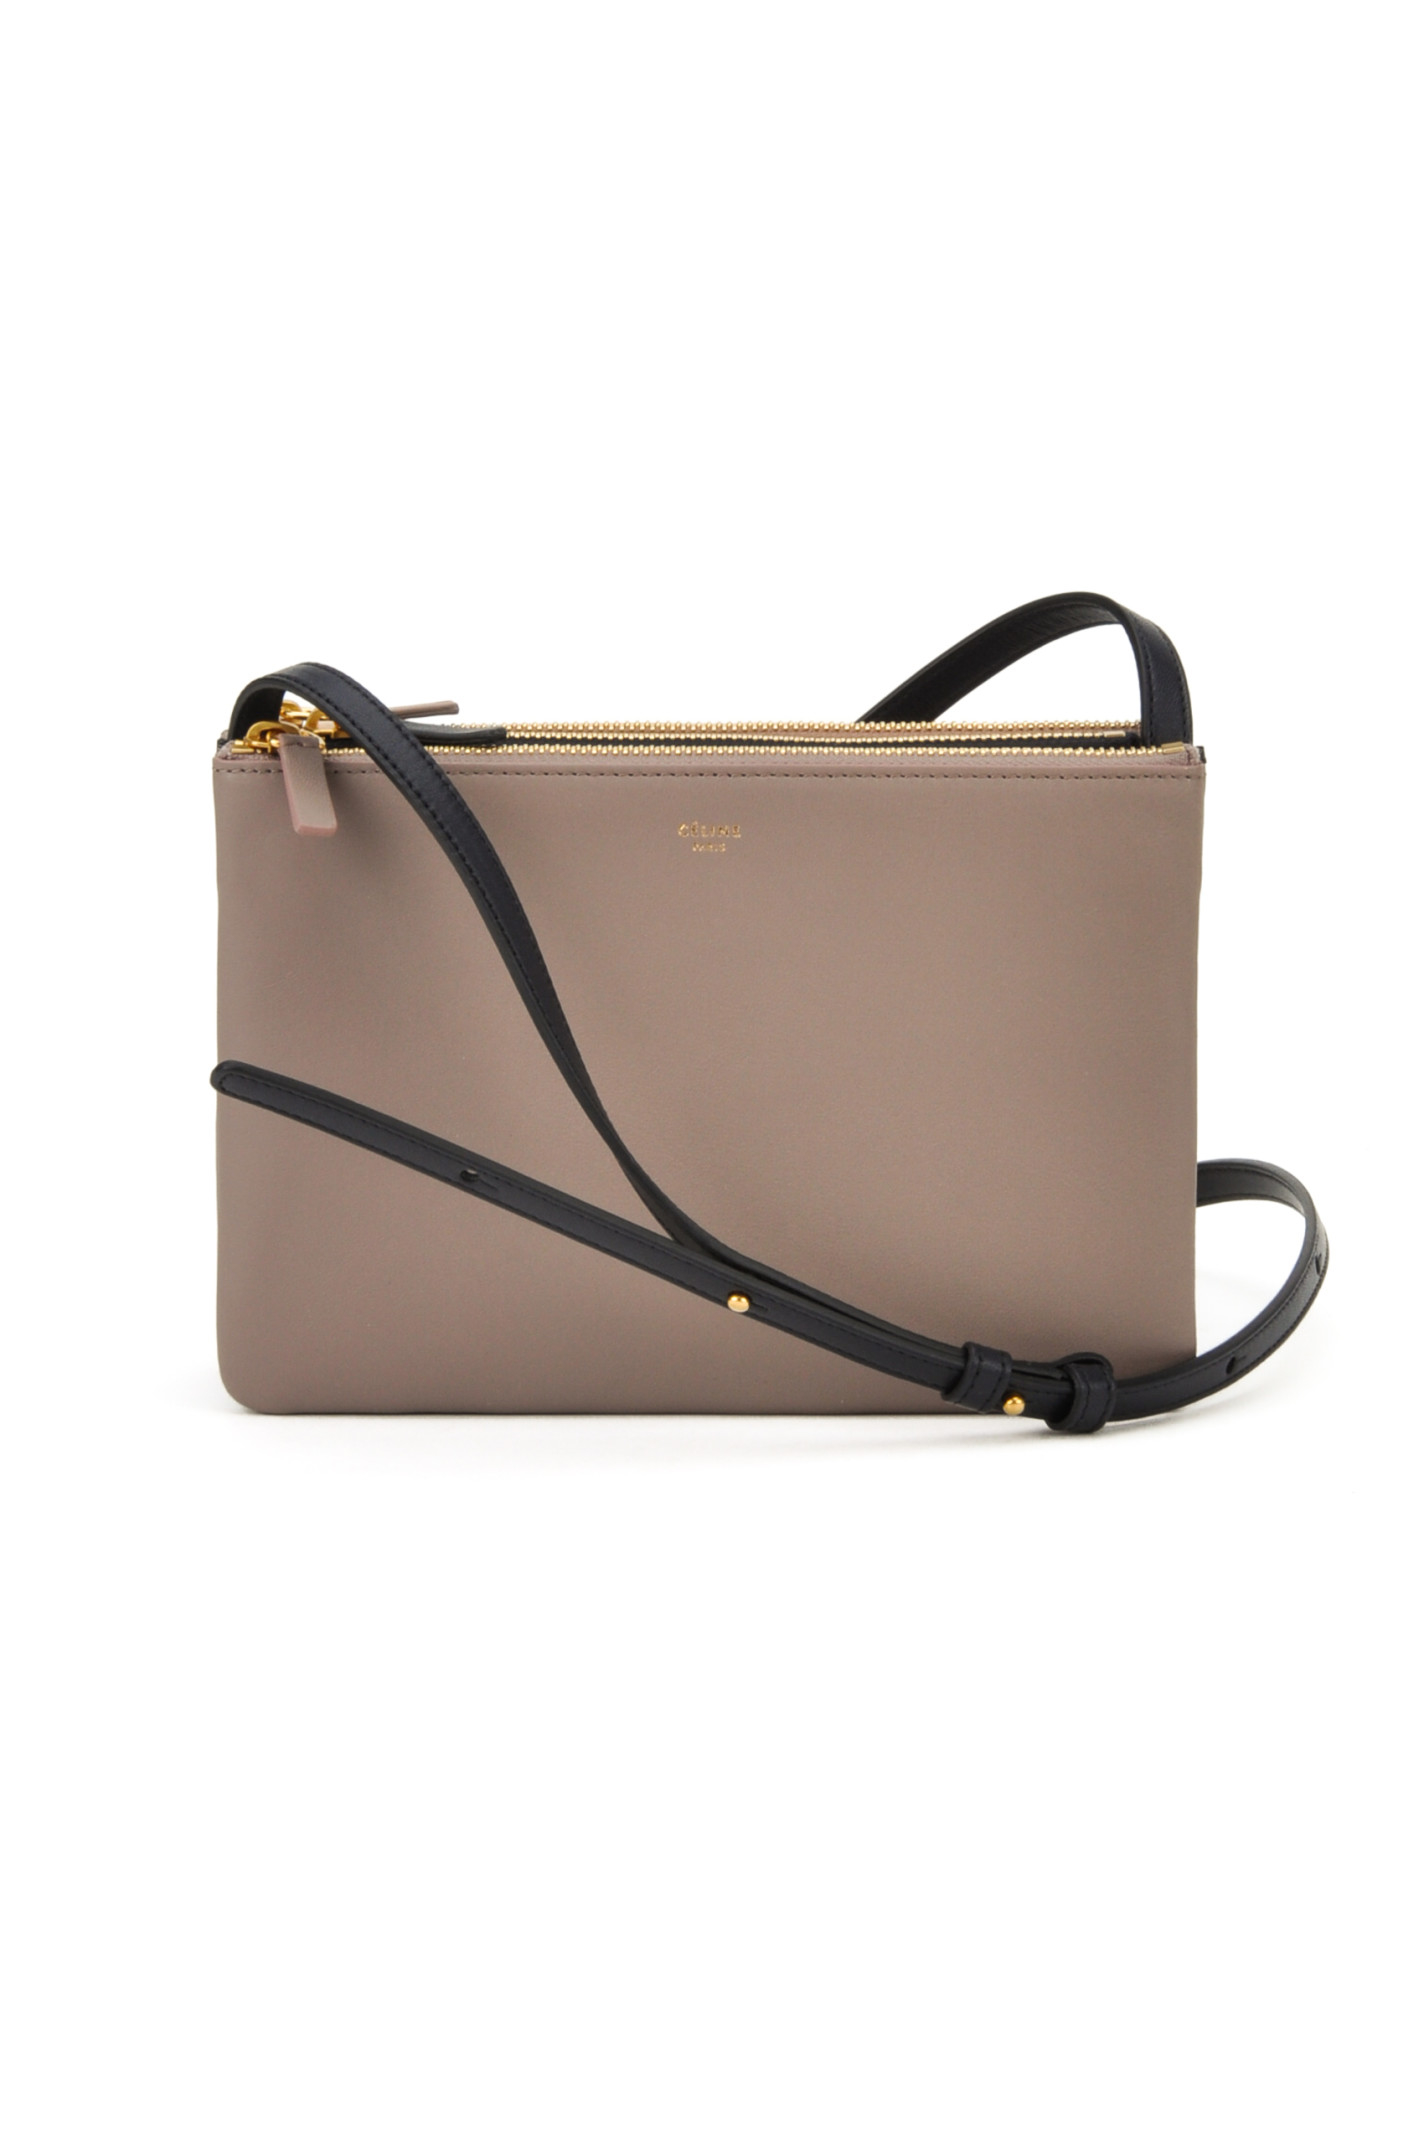 where to buy celine bags online - celine leather clutch bag trio